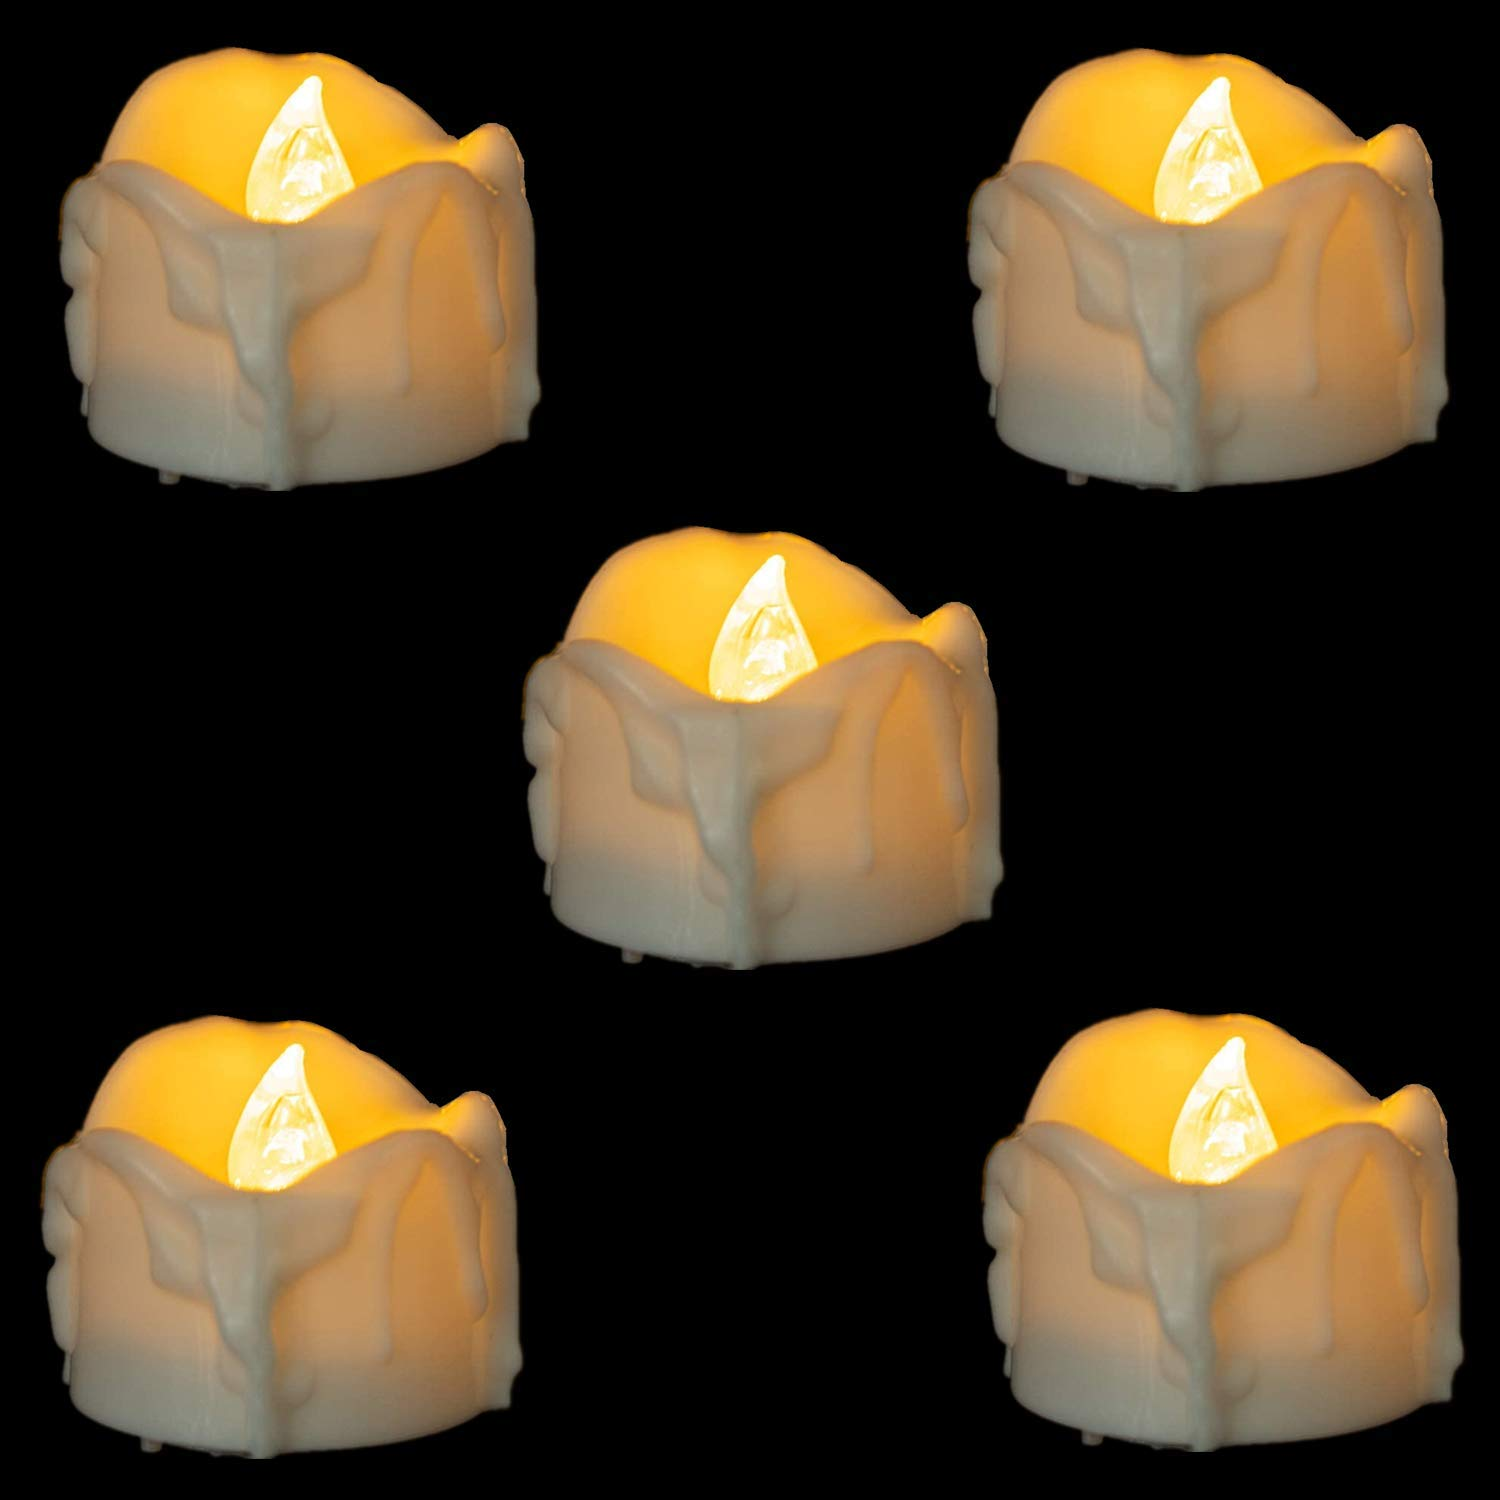 12 Pcs Flameless LED Tea Light Candles, Battery Operated Votive Tea Lights Candle for Halloween,Wedding,Christmas,Home Party Decorations,Flickering Flameless Candles Dripping Wax Warm White Light